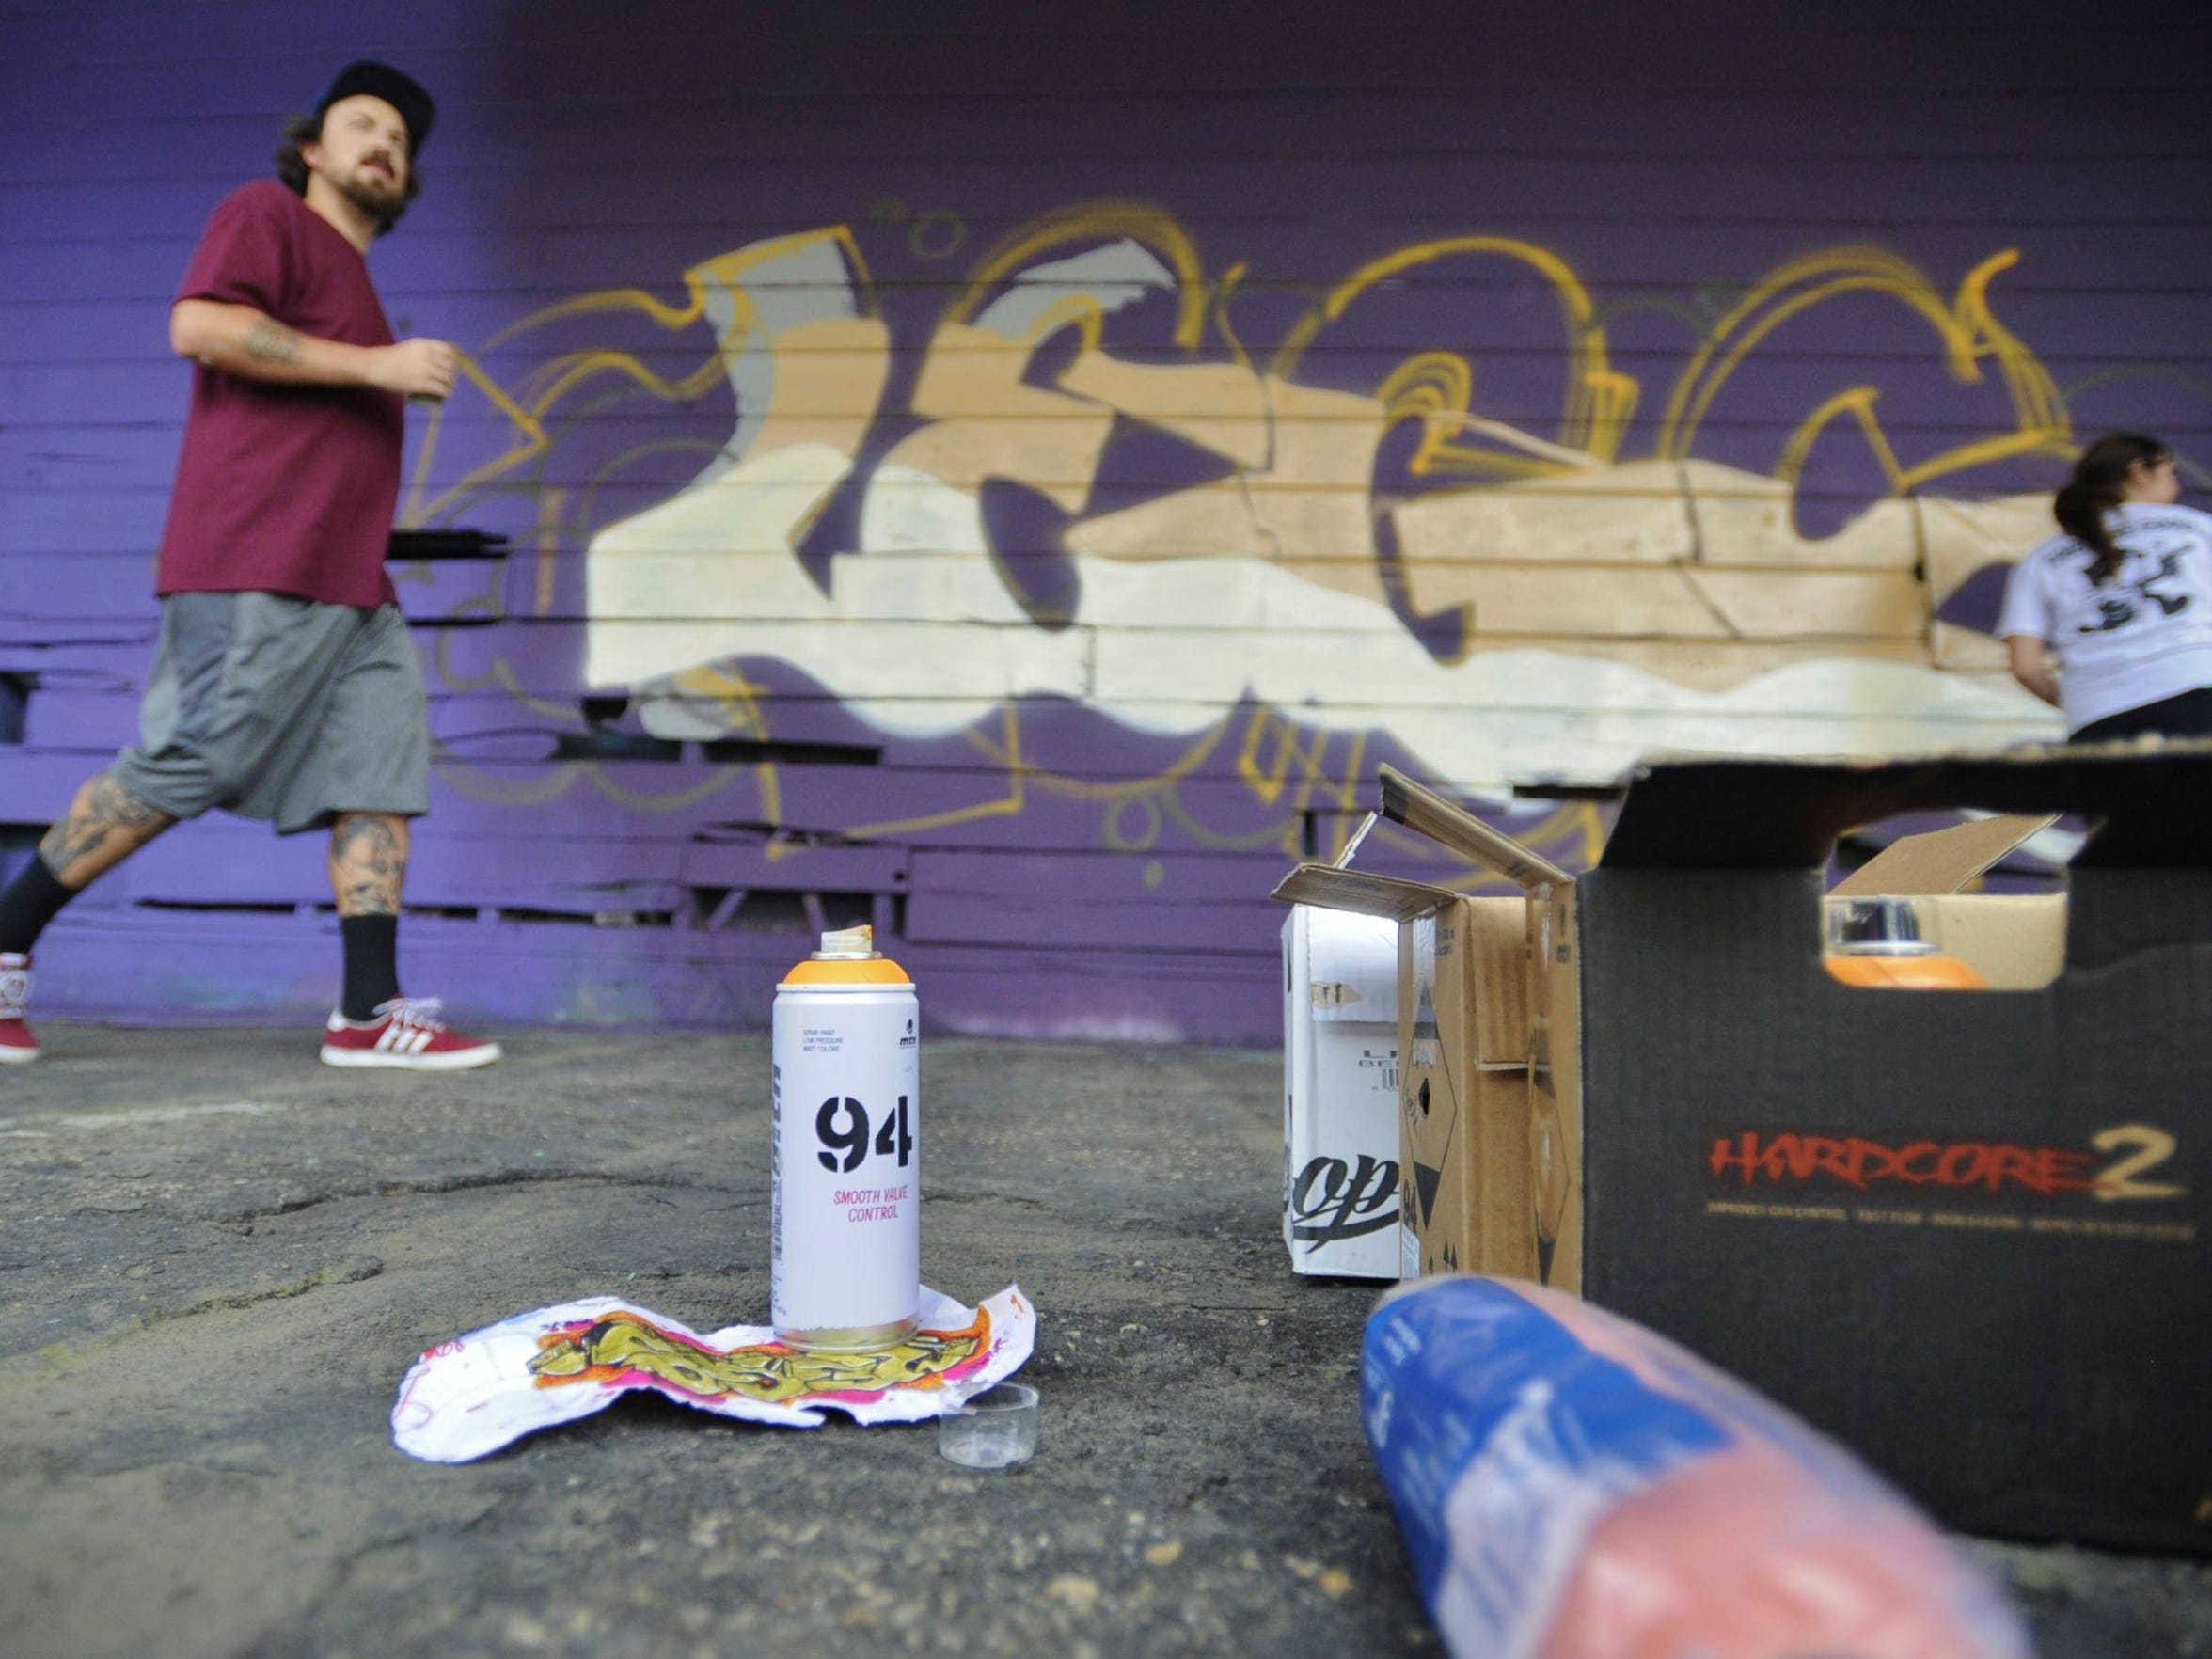 Urbanist Collective is non-government organization that works with at-risk youth by using art to keep them off the streets and out of trouble.